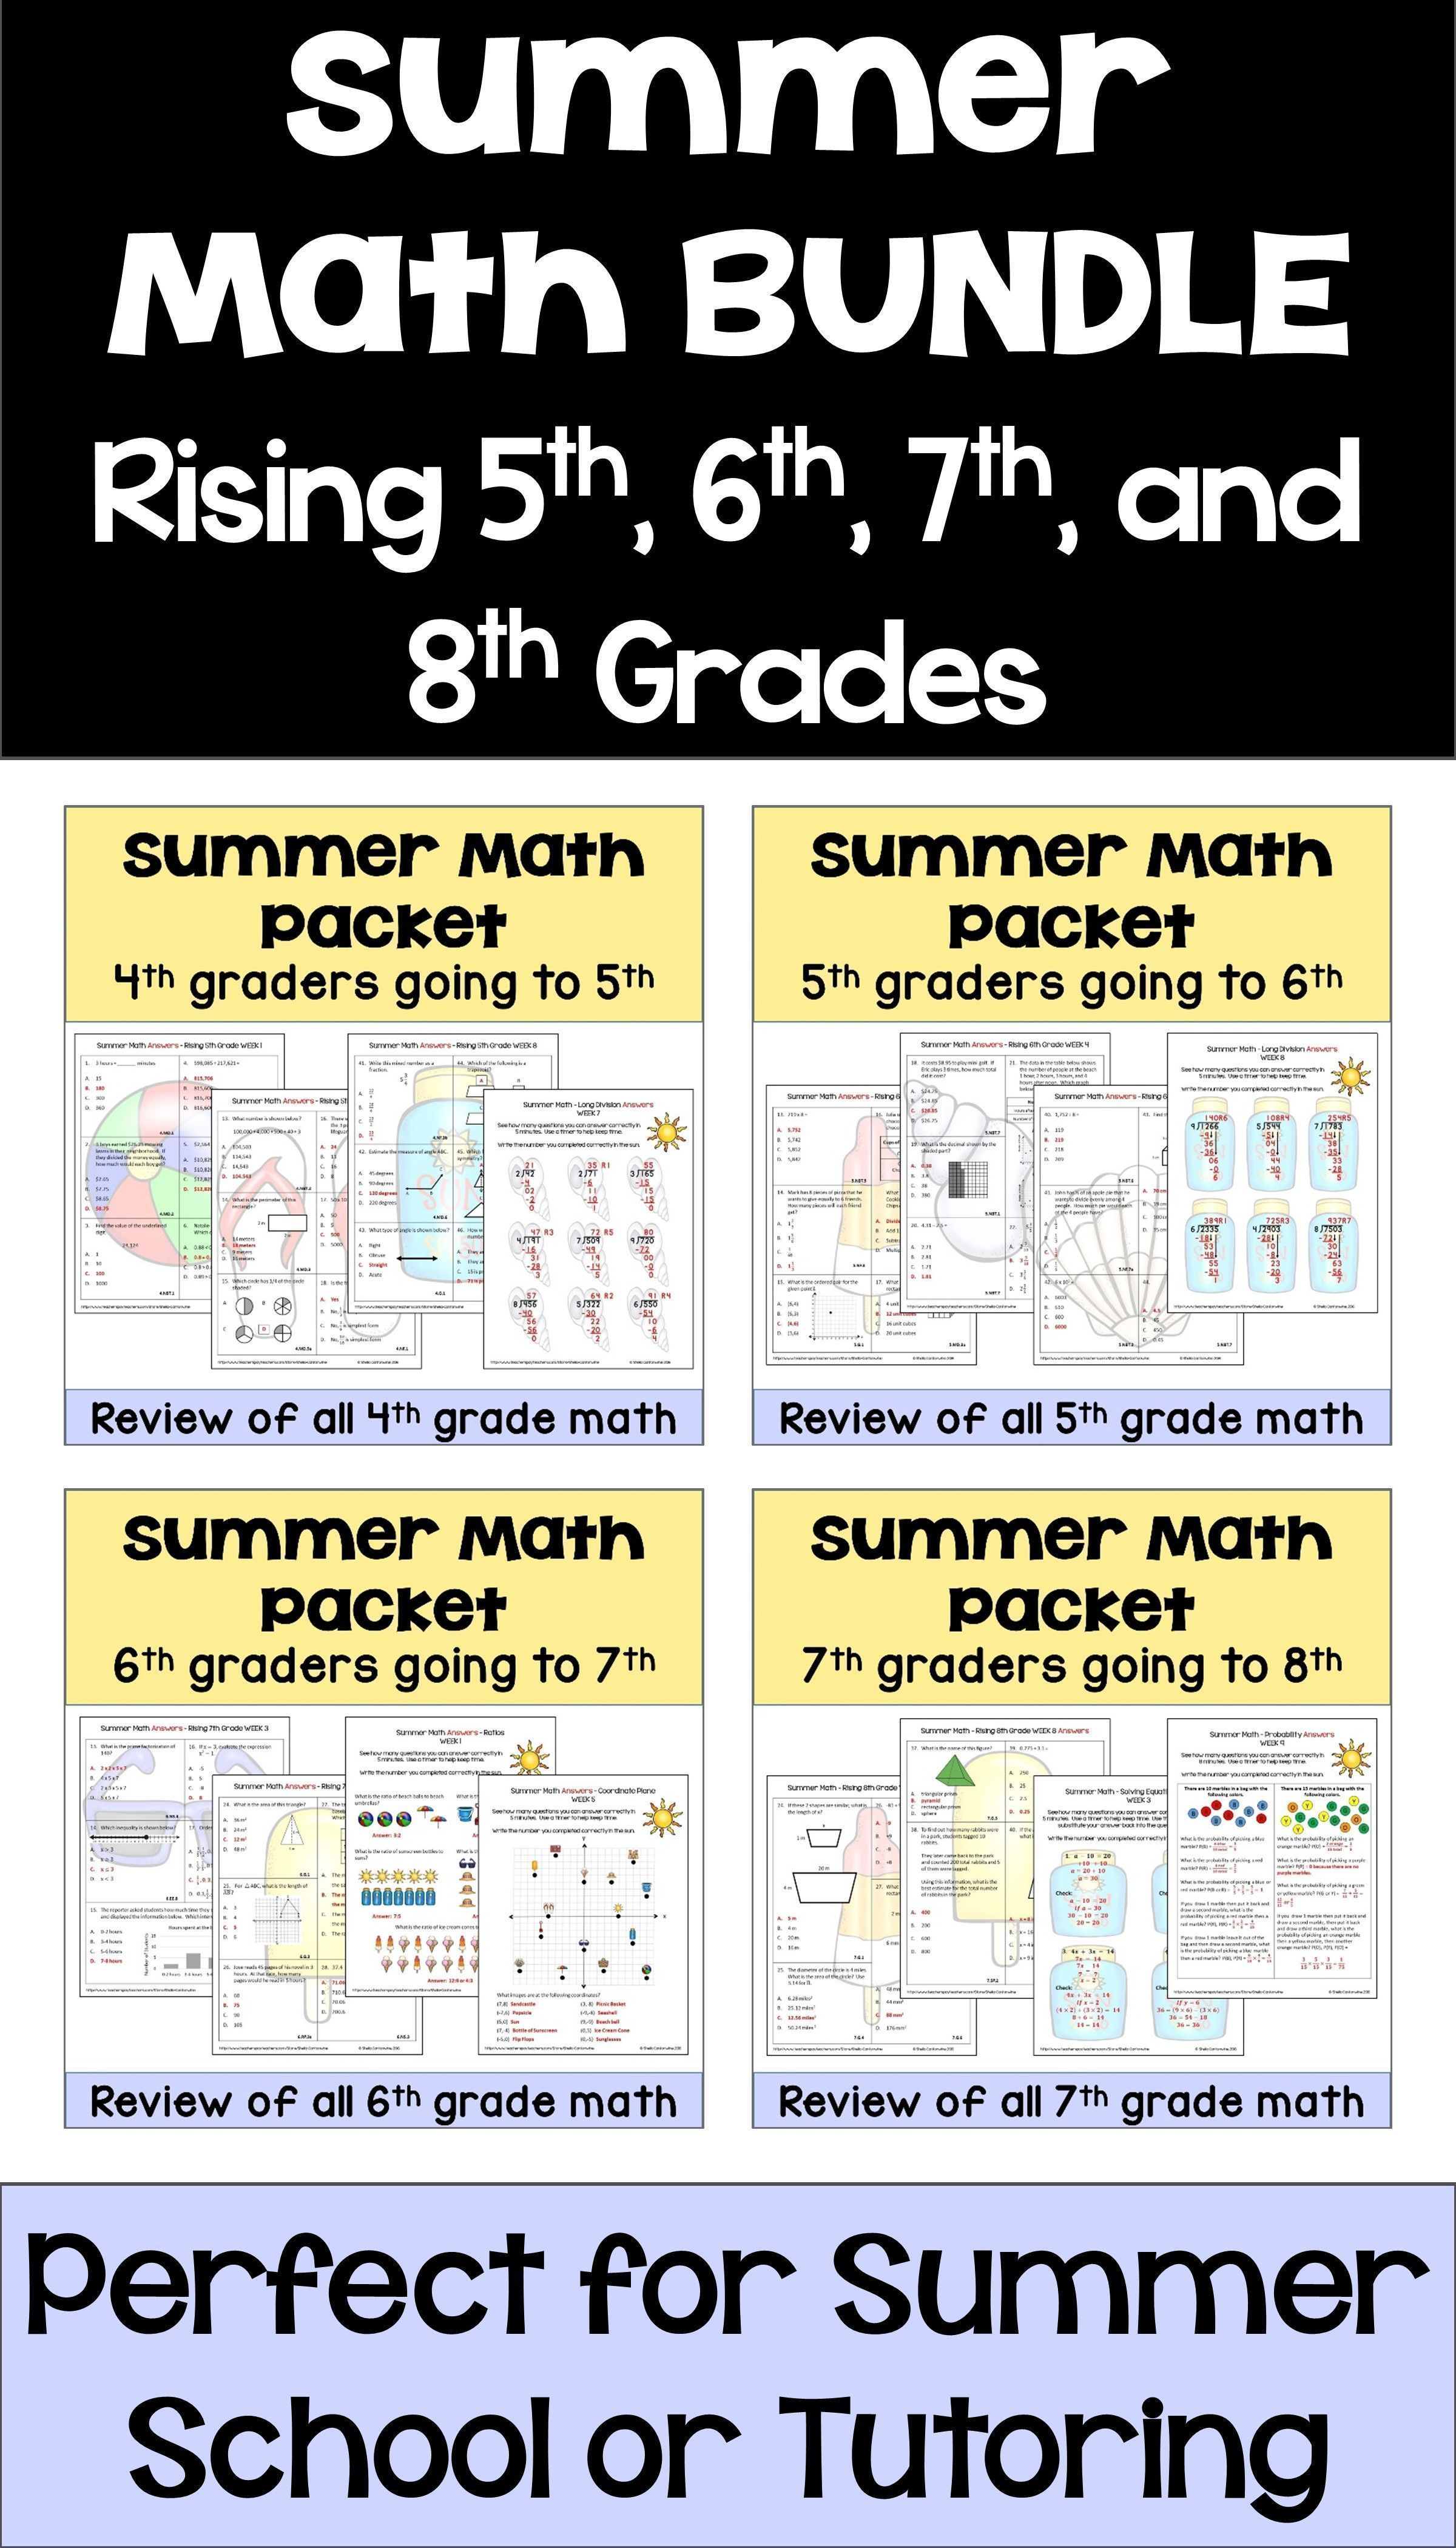 Summer Math Packet Bundle For Rising 4th 5th 6th 7th